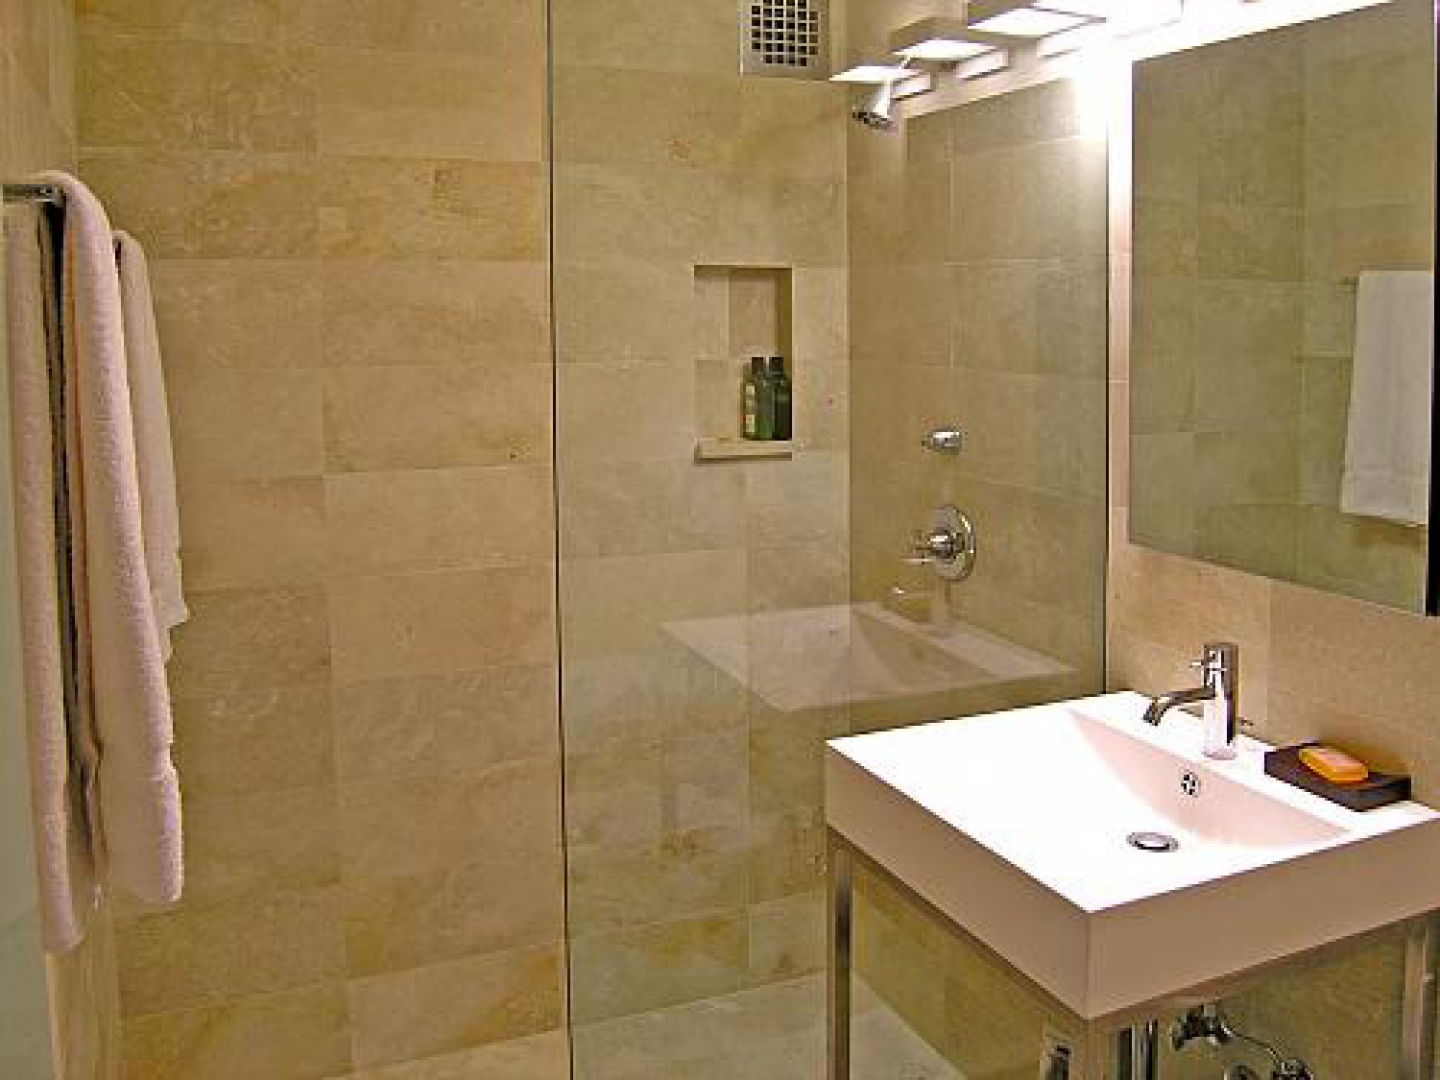 30 nice pictures and ideas bath and tile innovations for Images of bathroom tile ideas